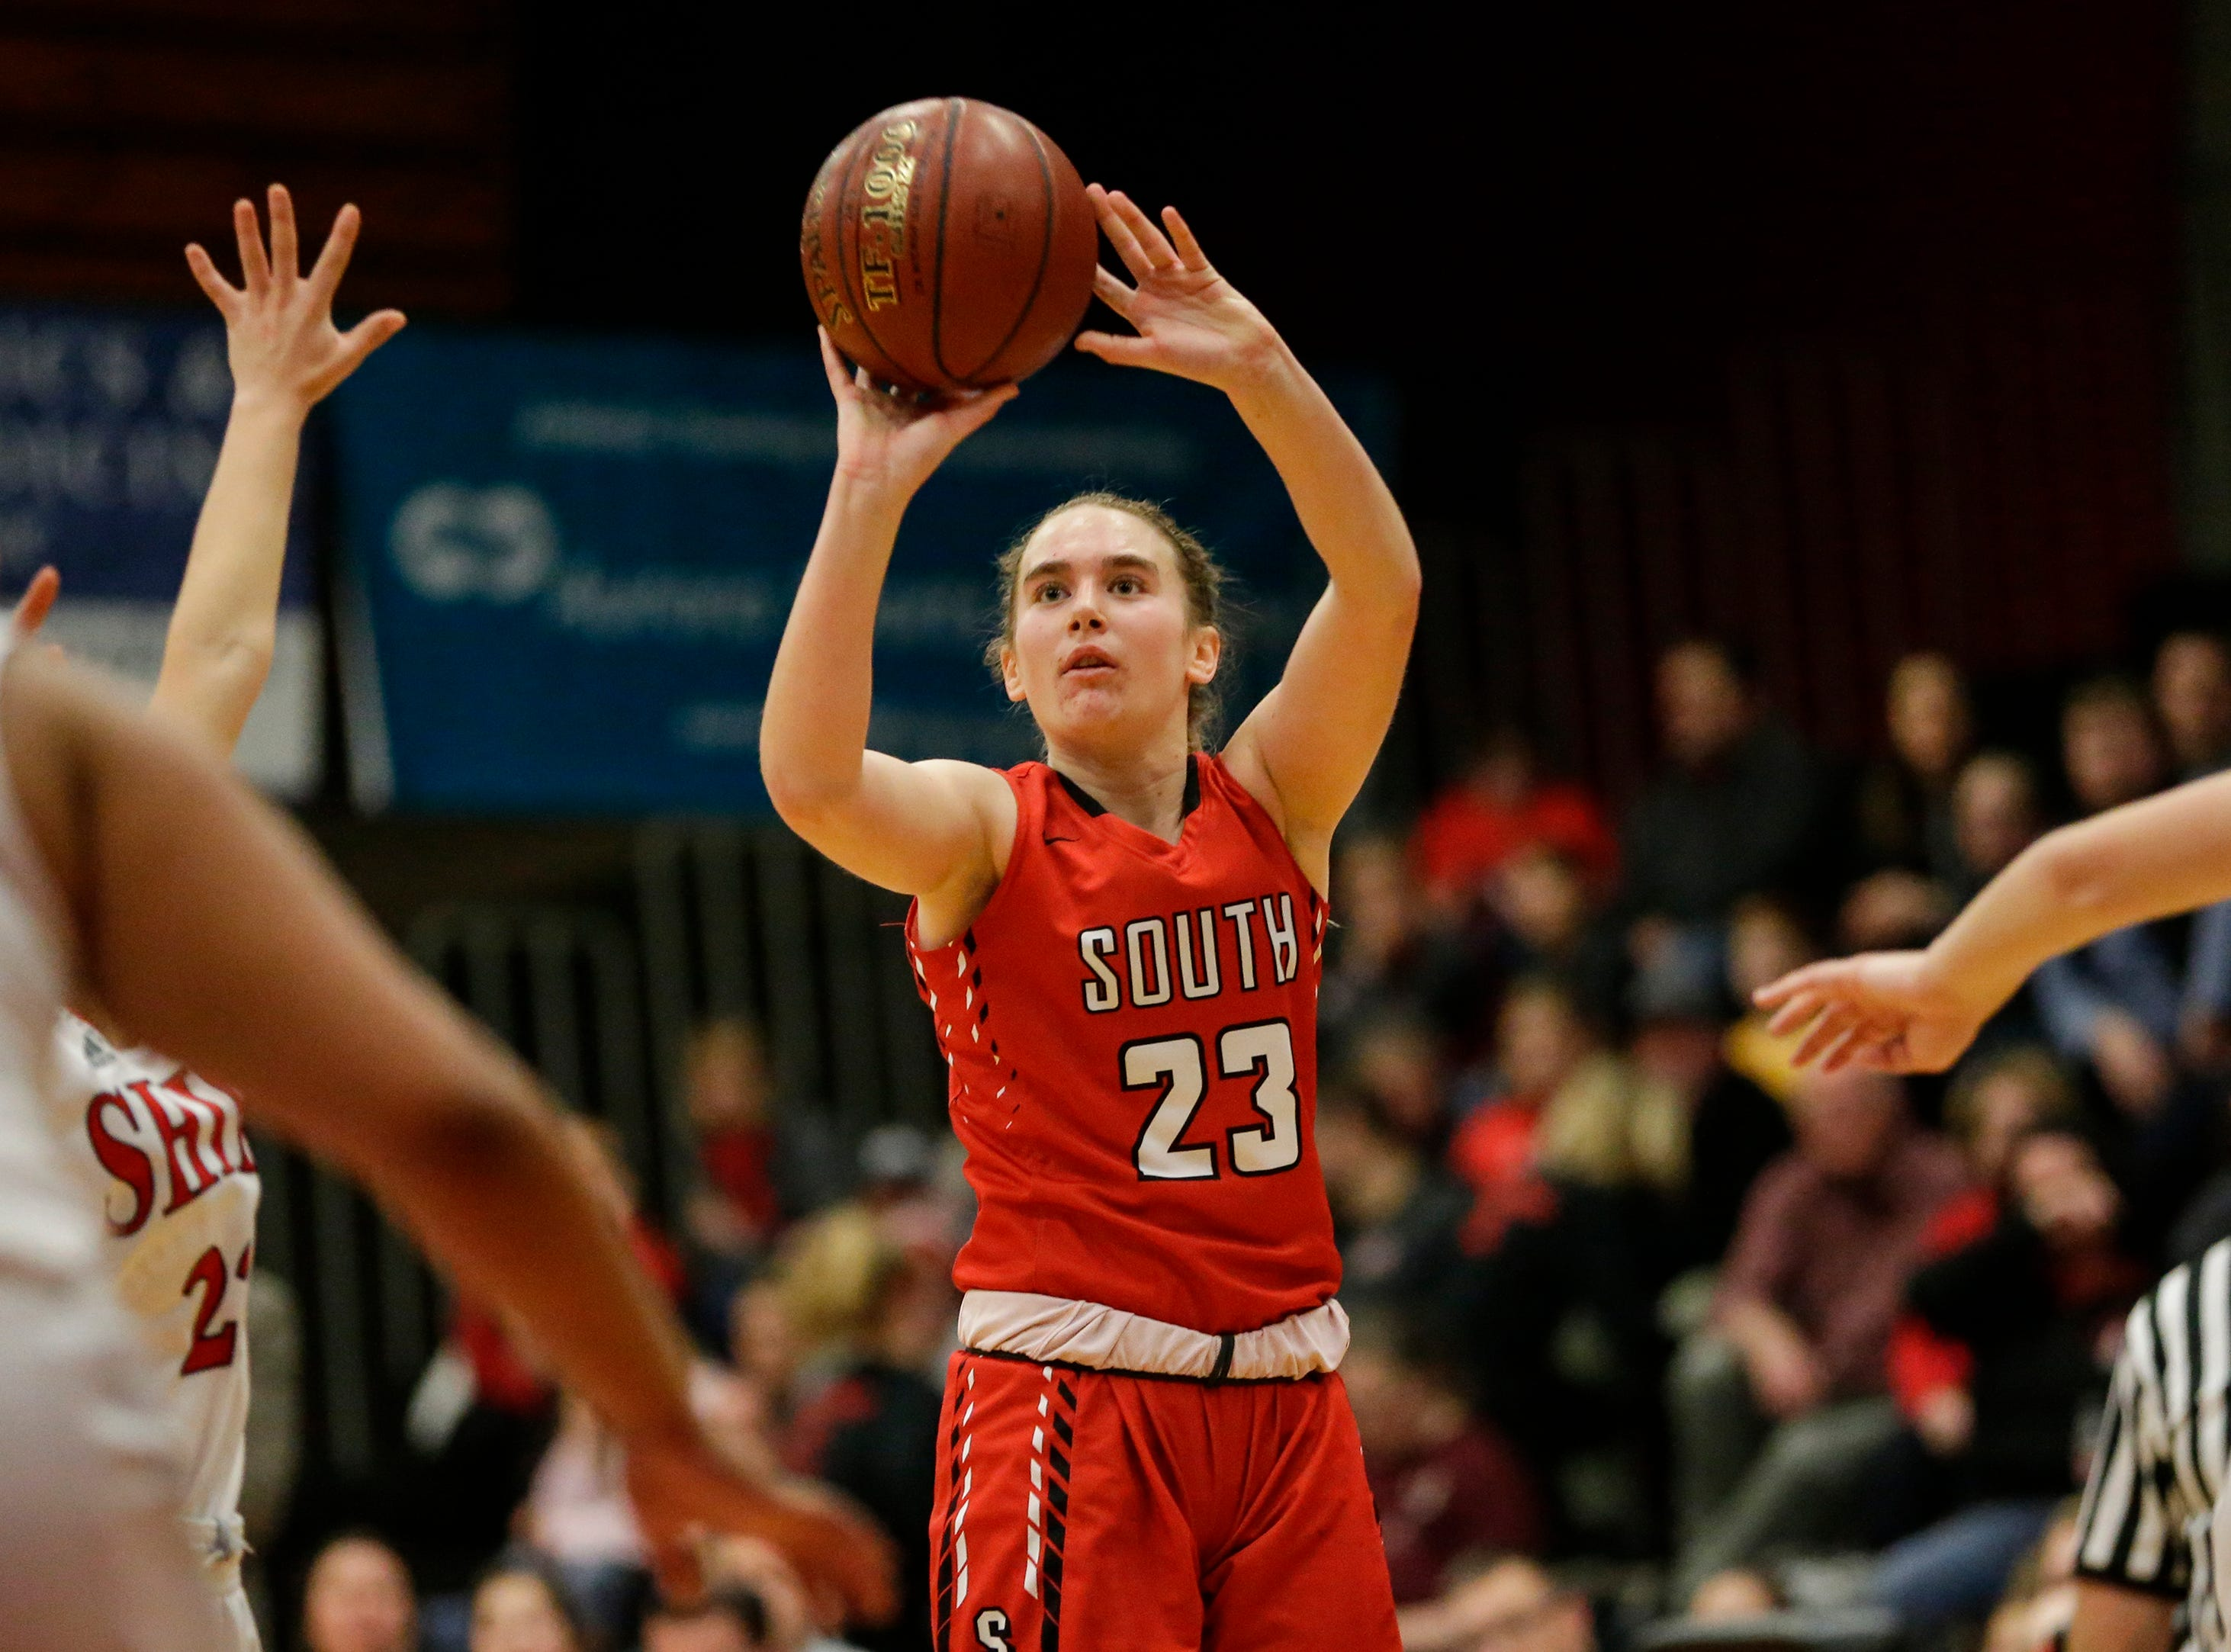 Sheboygan South's Halle Boldt shoots against Manitowoc Lincoln during an FRCC matchup at Manitowoc Lincoln High School Friday, January 4, 2019, in Manitowoc, Wis. Joshua Clark/USA TODAY NETWORK-Wisconsin